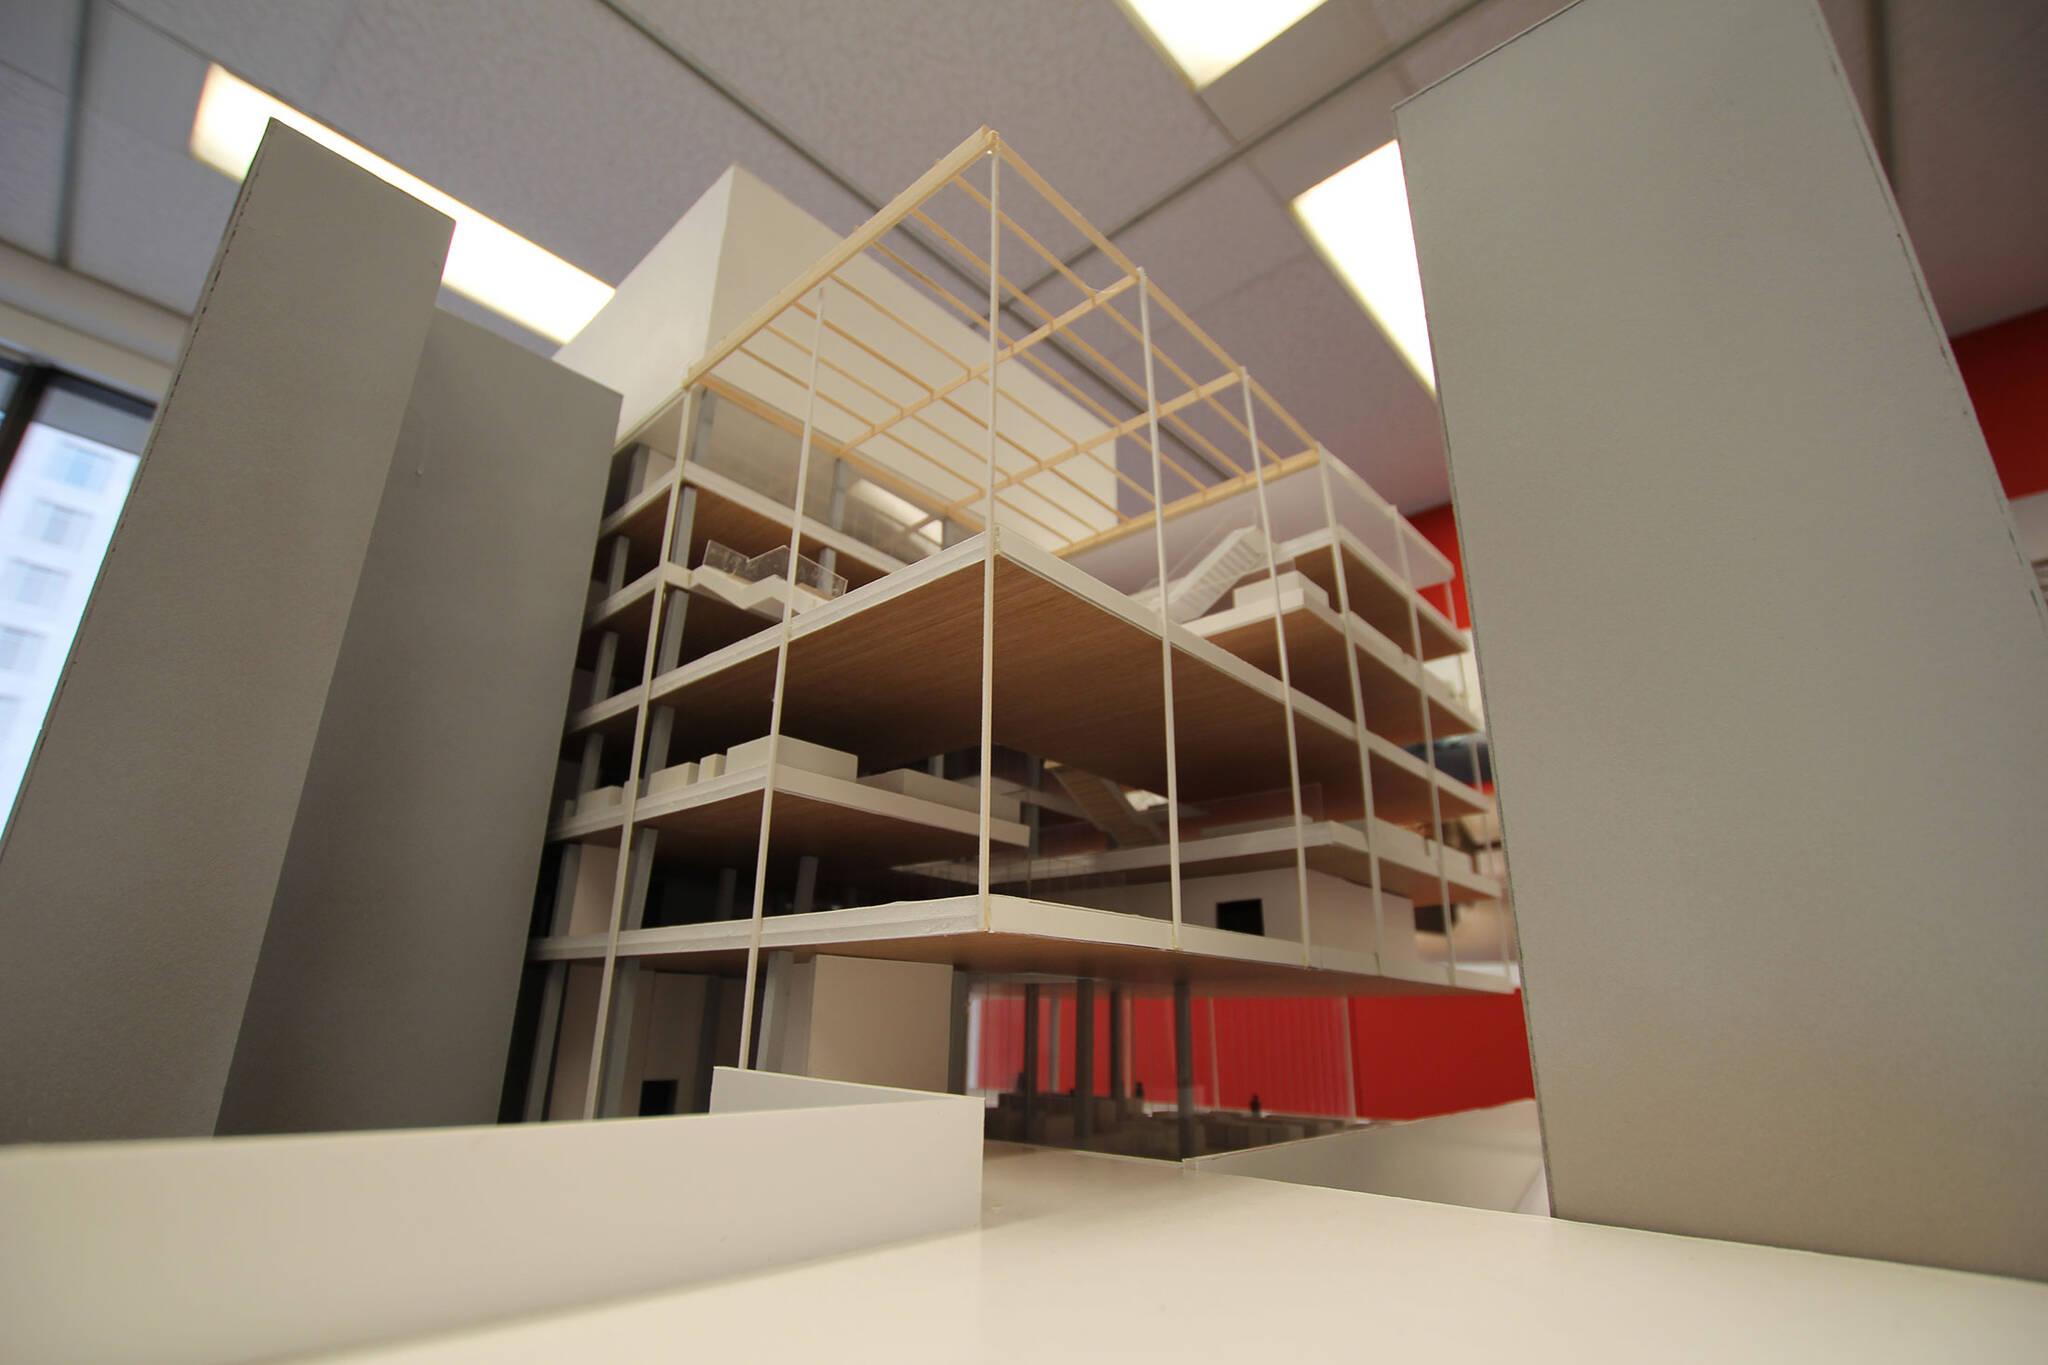 Architectural model of the American Bible Society project located at the Upper West Side, New York City designed by the architecture studio Danny Forster & Architecture